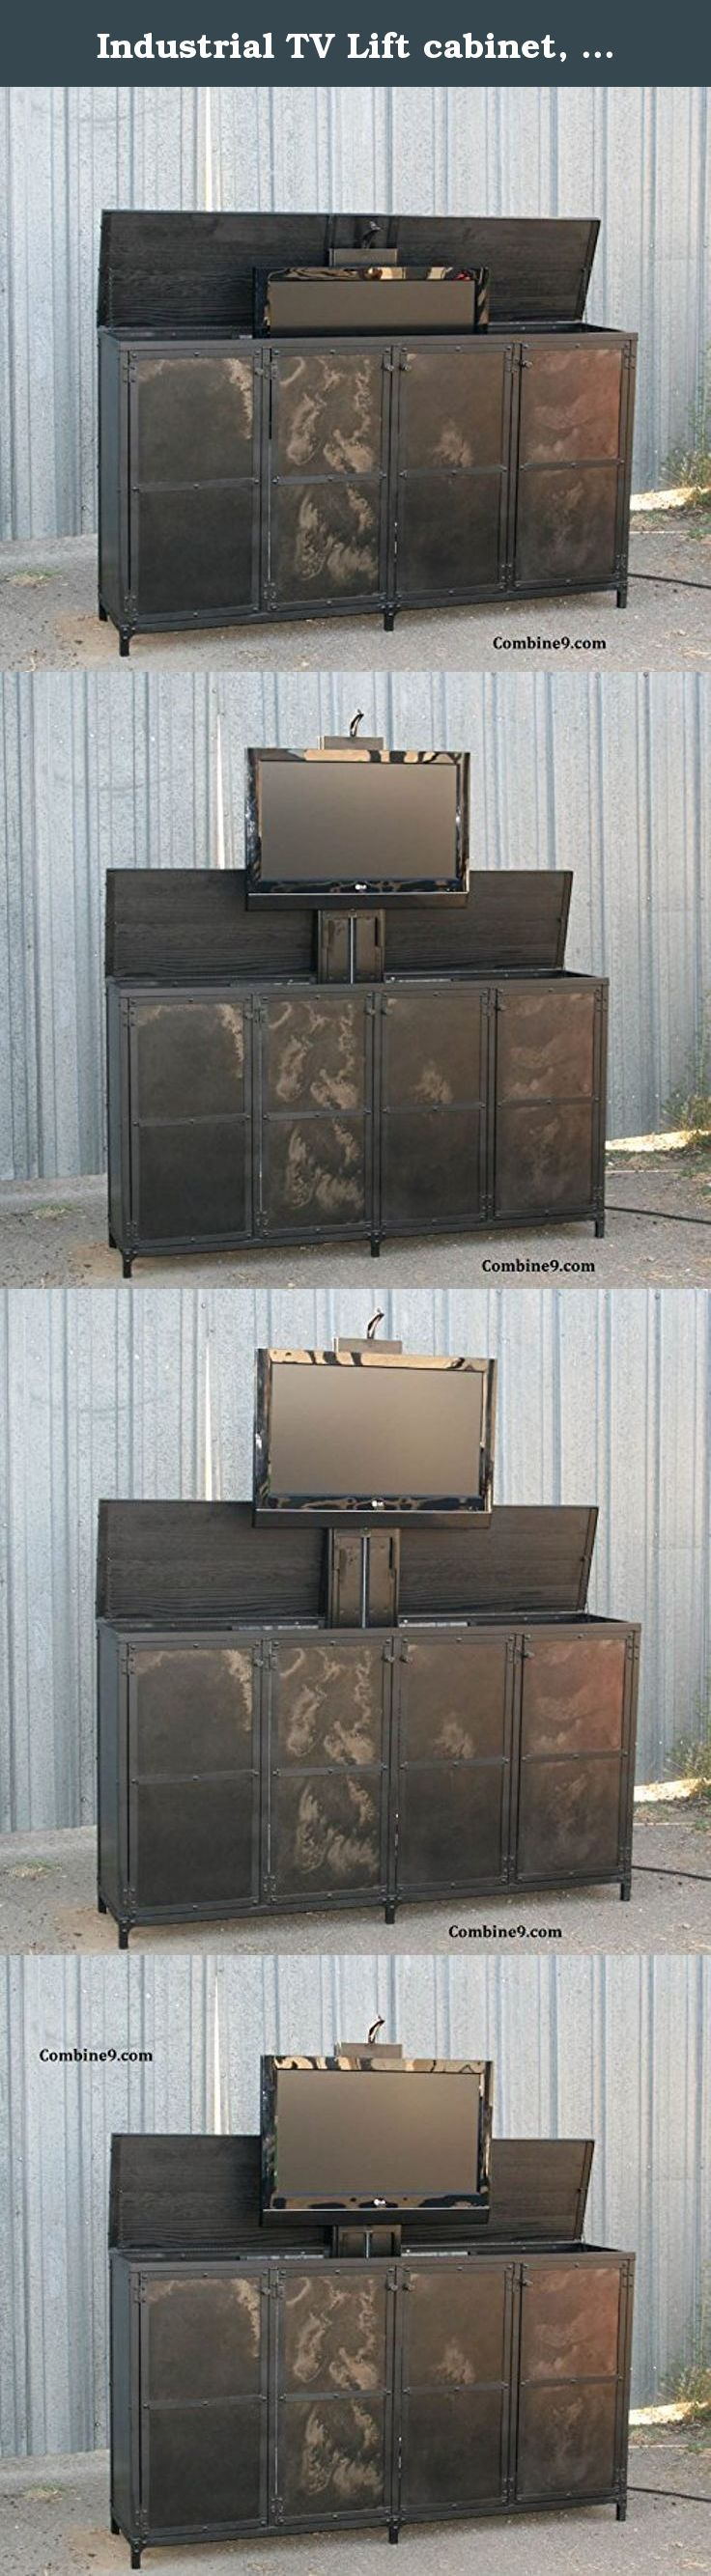 Industrial TV Lift cabinet, steel and reclaimed wood avail. Here is a stylish way to hide your TV. This is a lift top media console which features an electric mechanism to open the top of the unit and raise the TV for viewing. You can activate the lift with wireless remote and a push button switch on the side. When you are done watching TV, you simply press the button and the TV will be lowered and the top close. ** The price shown here is for one made of steel. However, we have included…